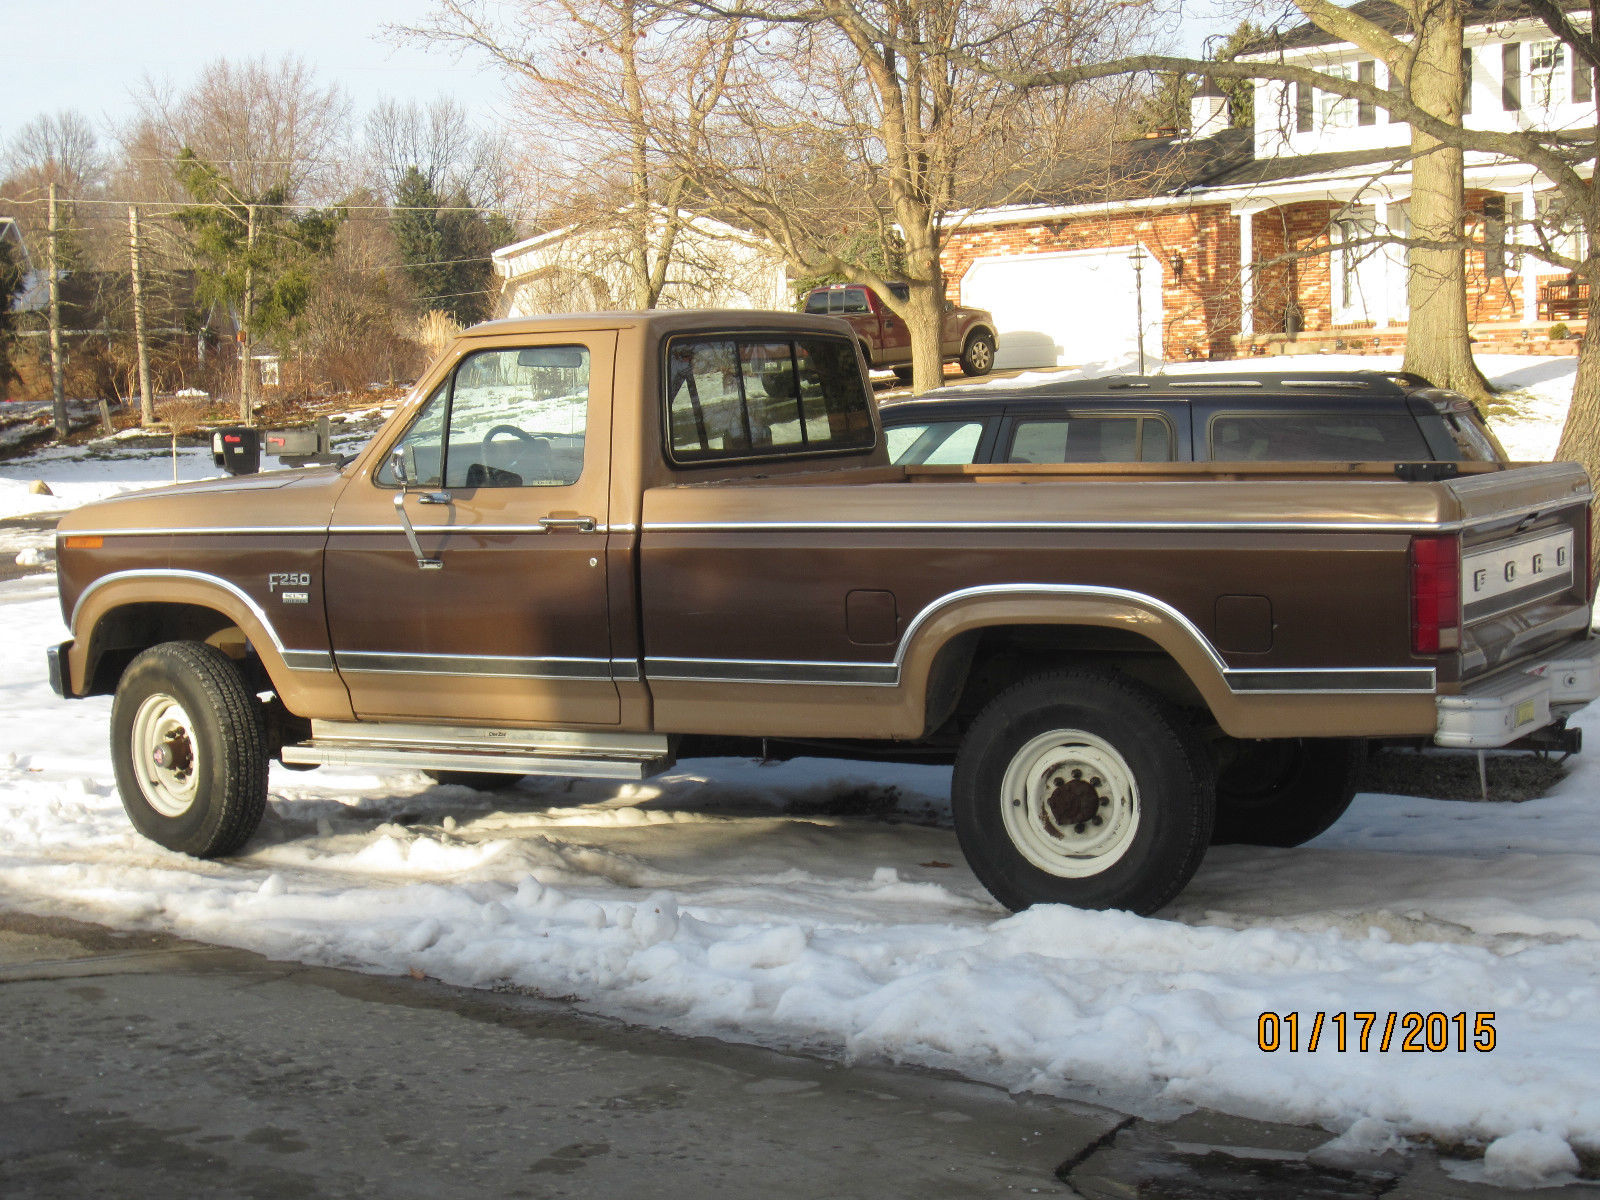 1984 ford f250 4x4 1980 85 ford truck 6 9 diesel for sale in canton ohio united states